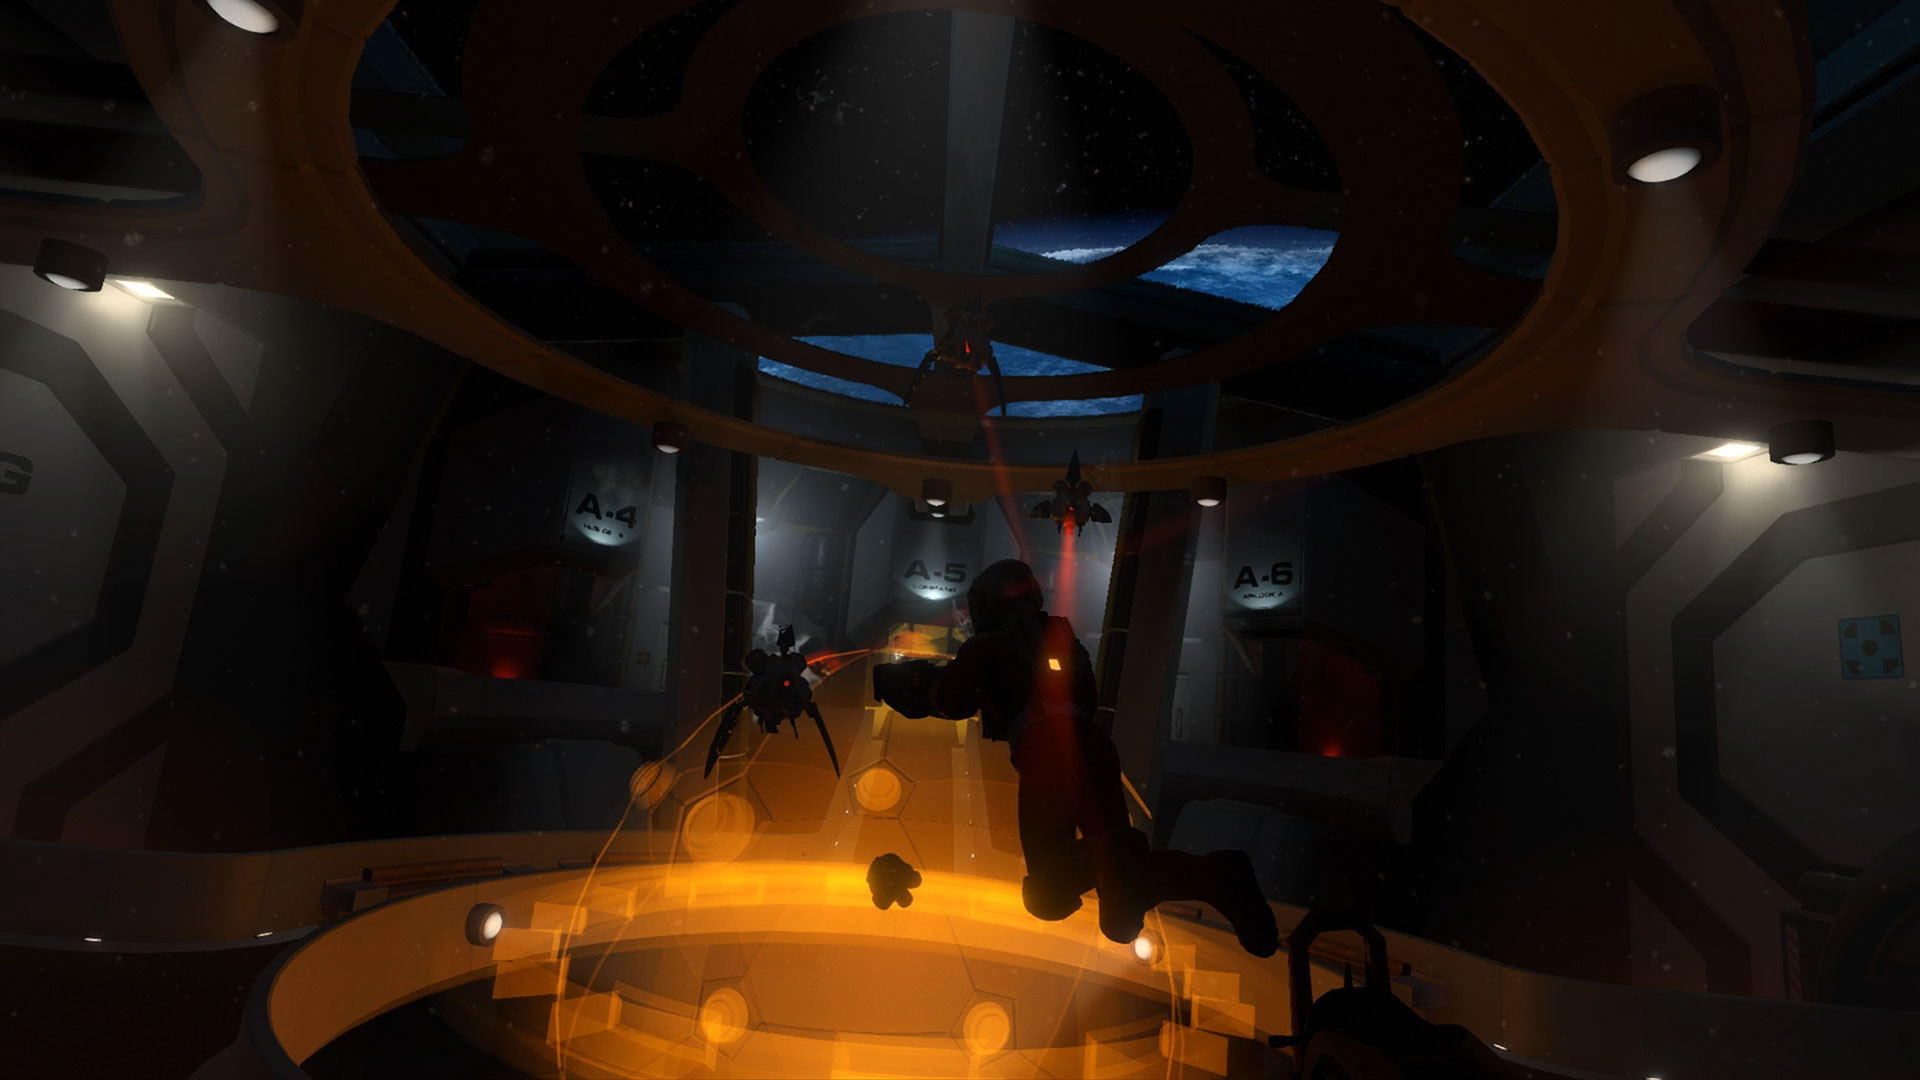 3D, 3rd Eye Studios, Action, adventure, Downward Spiral, Downward Spiral: Horus Station, Downward Spiral: Horus Station Review, first-person, indie, PS4, PS4 Review, Rating 4/10, Sci-Fi, Space, VR